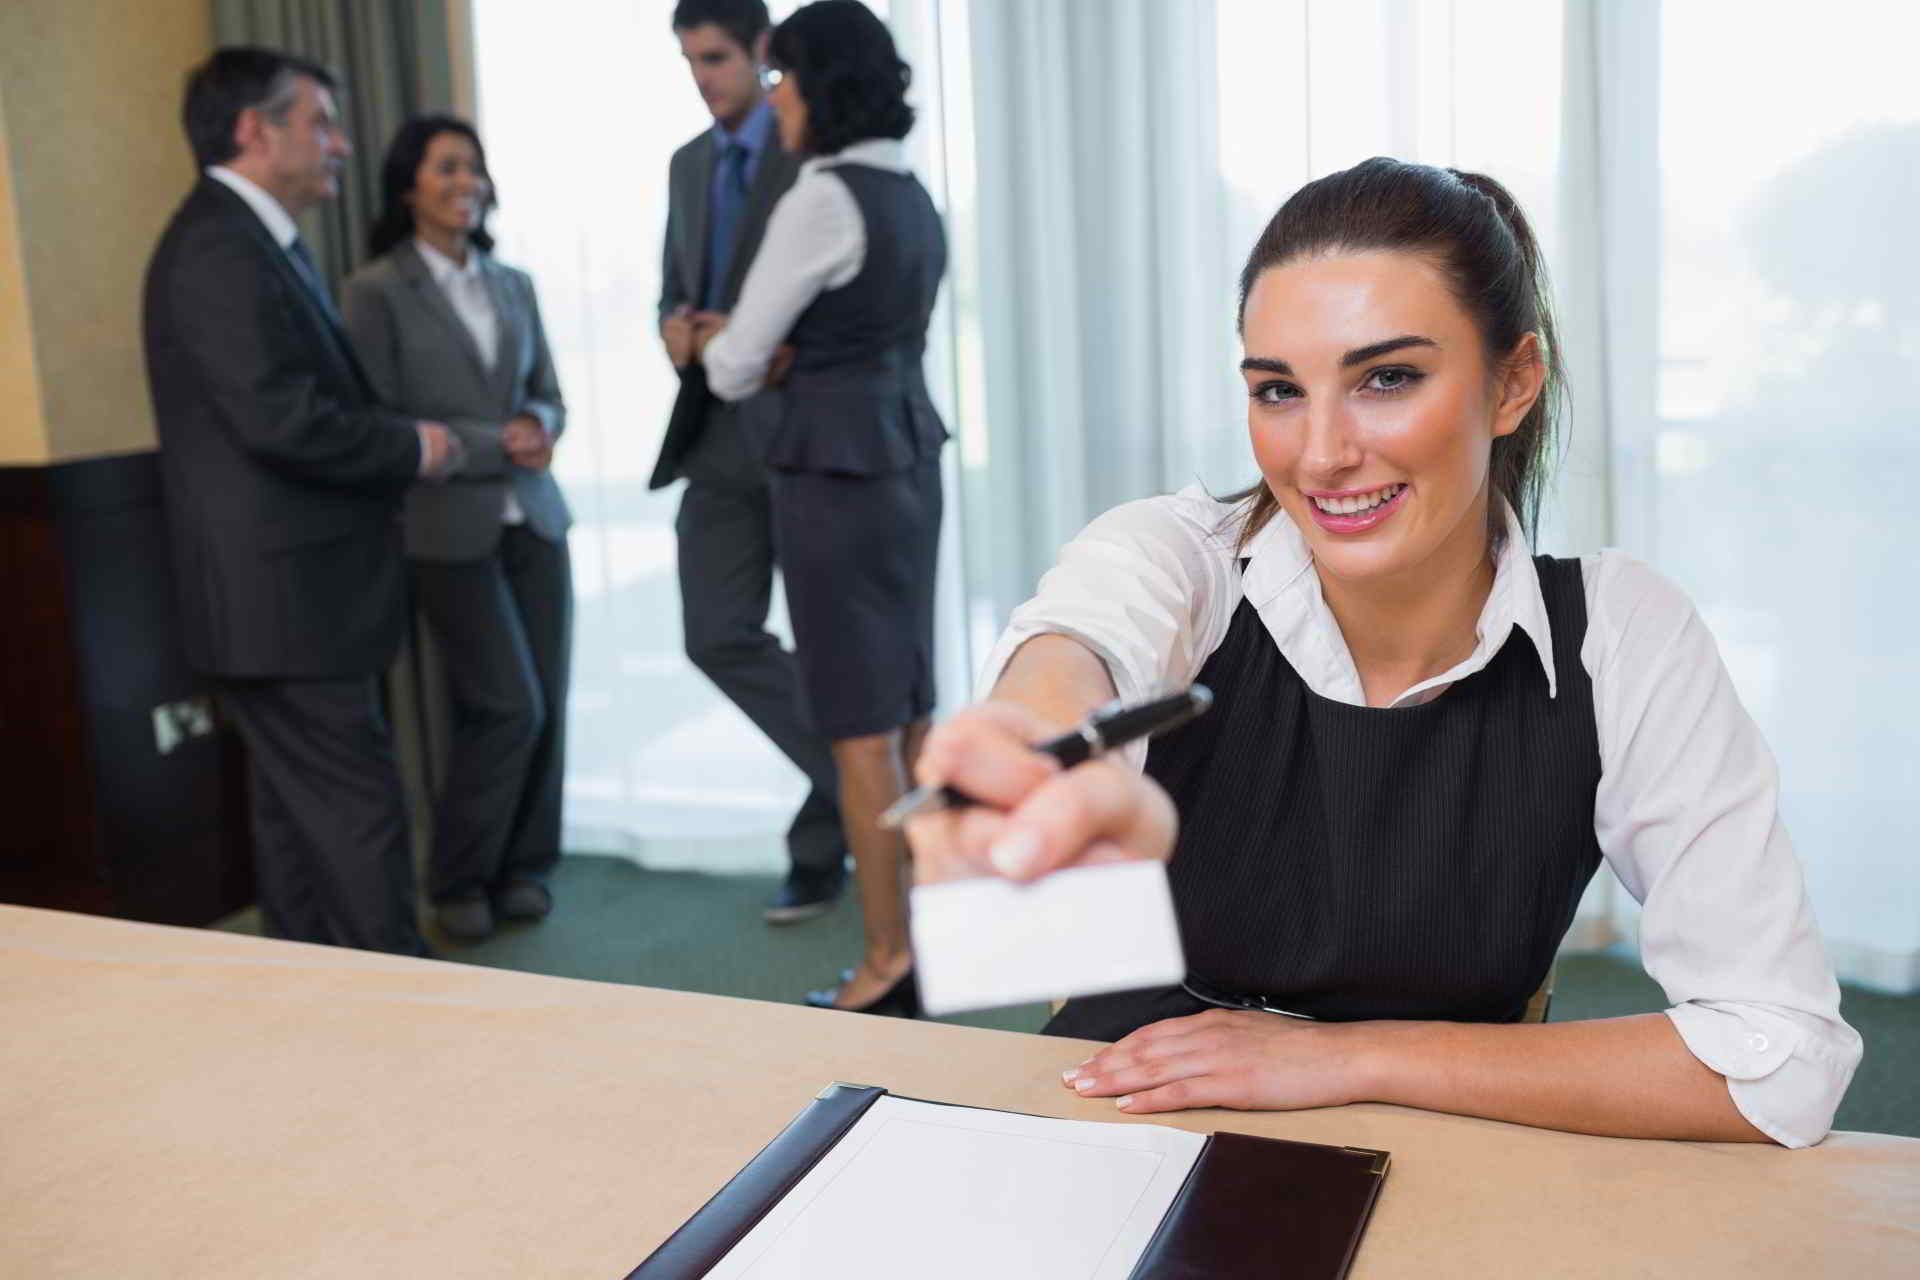 happy woman handing name tag